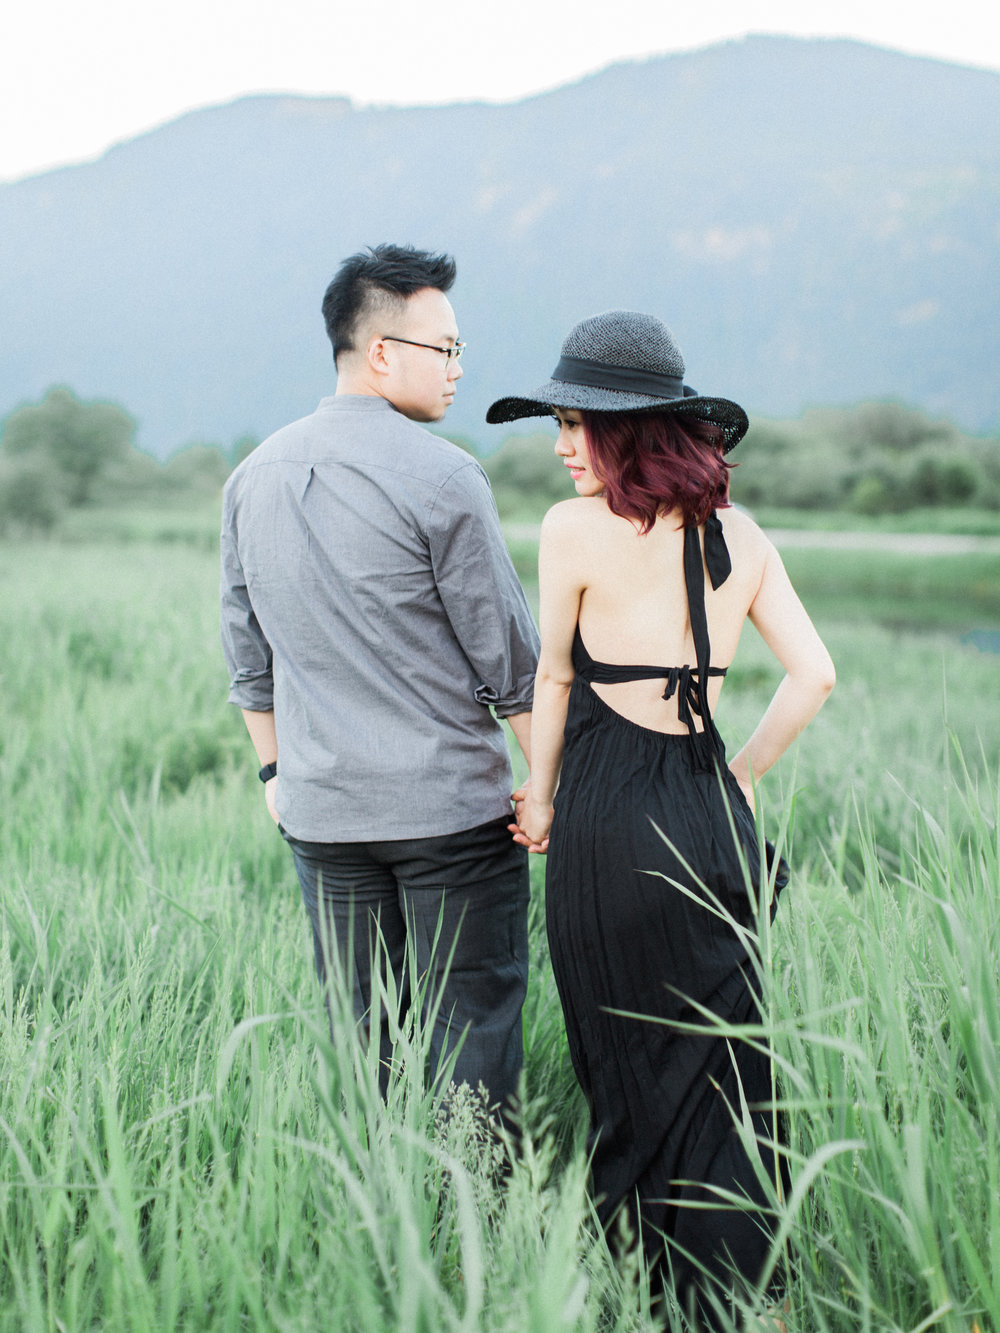 20170528Maple_Ridge_Engagement_Mary_Marco_Prewedding-40 copy.jpg